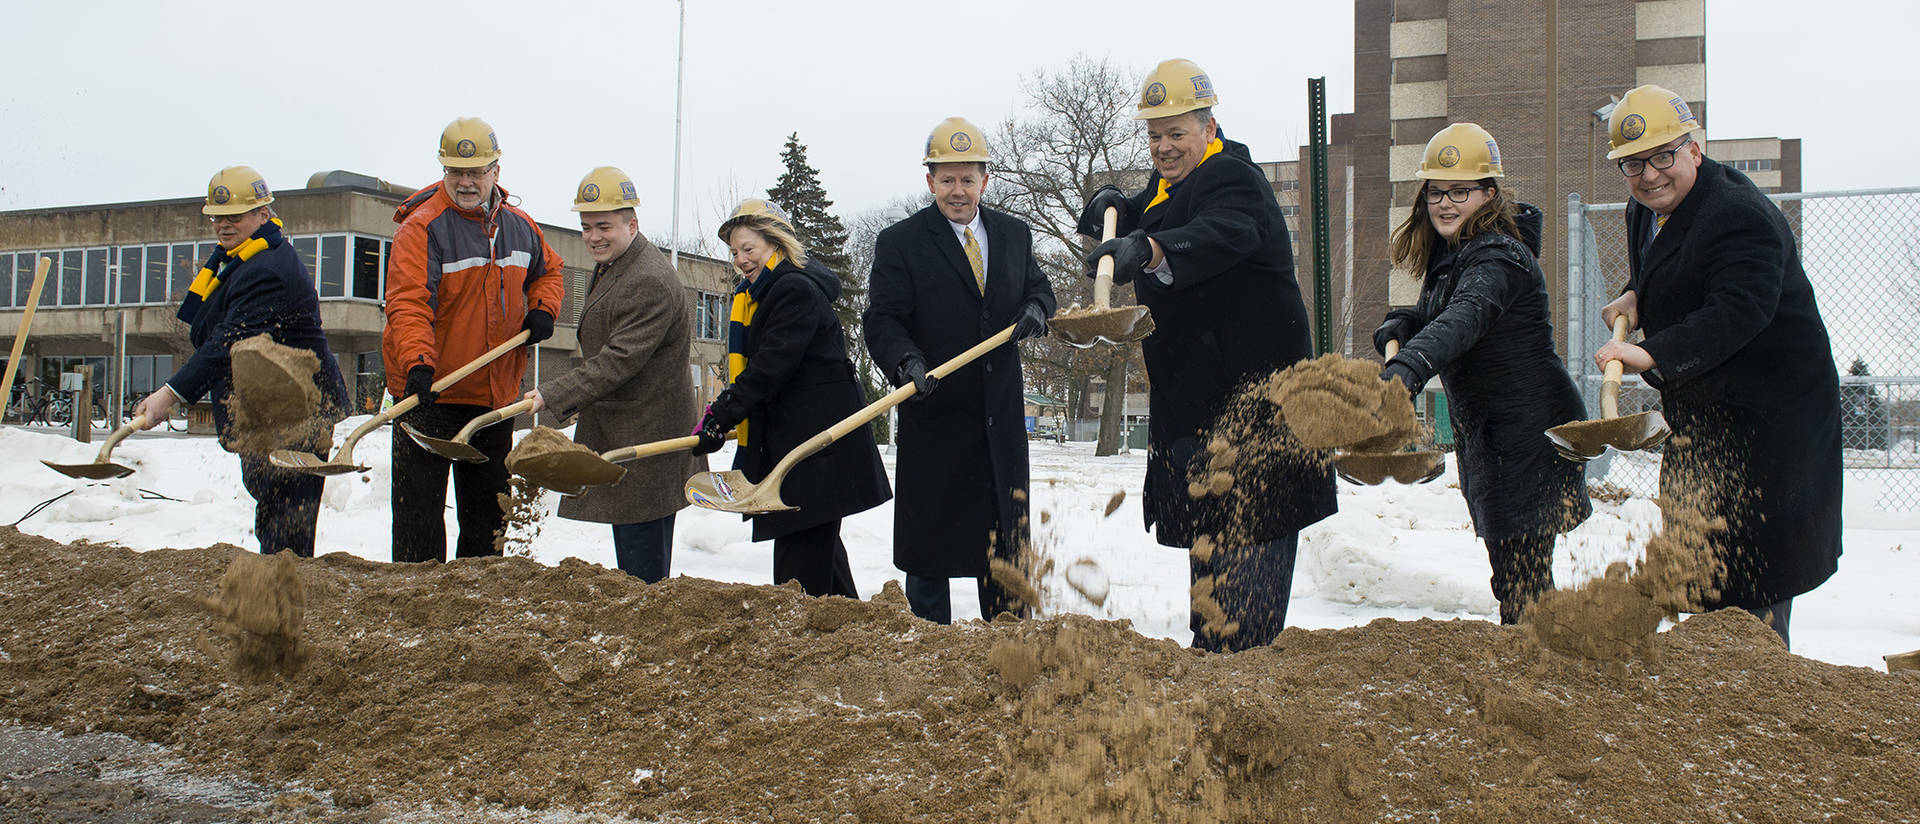 new residence hall groundbreaking February 2018